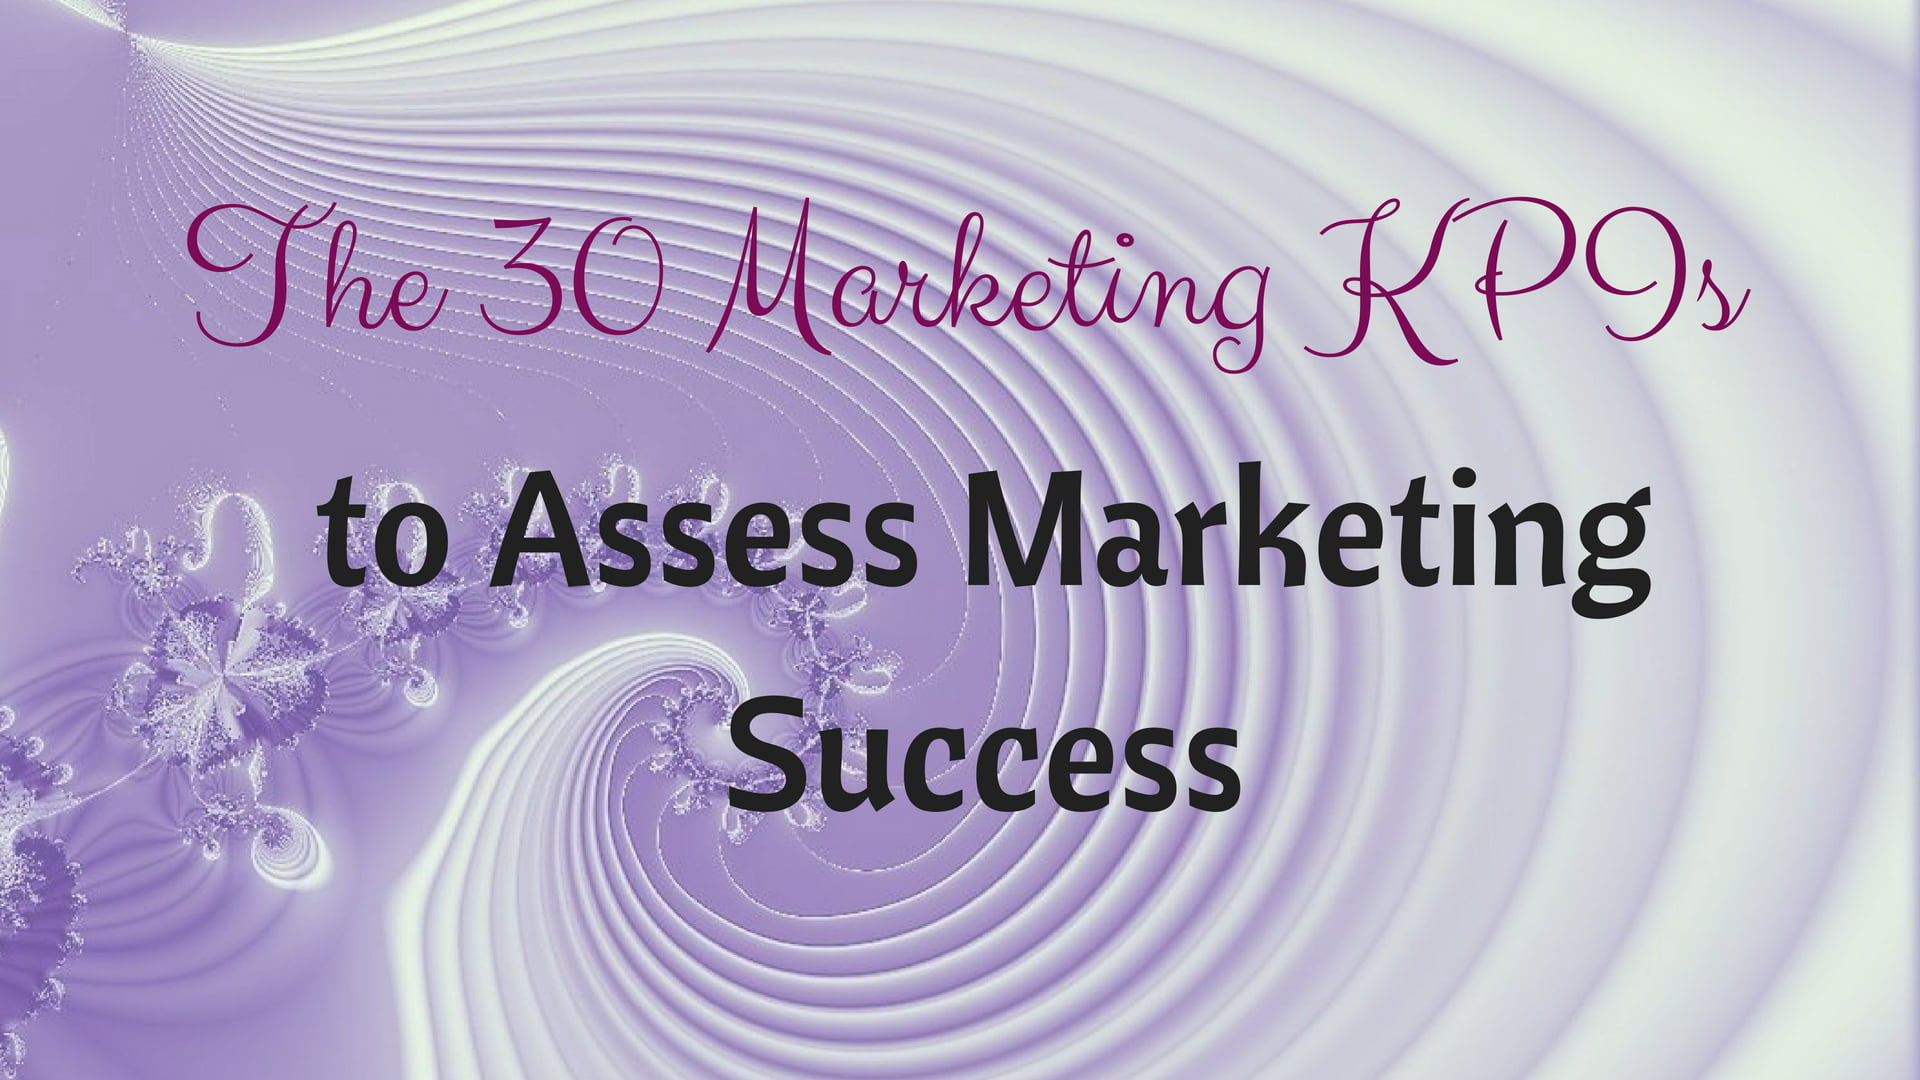 The 30 Marketing KPIs To Assess Marketing Success